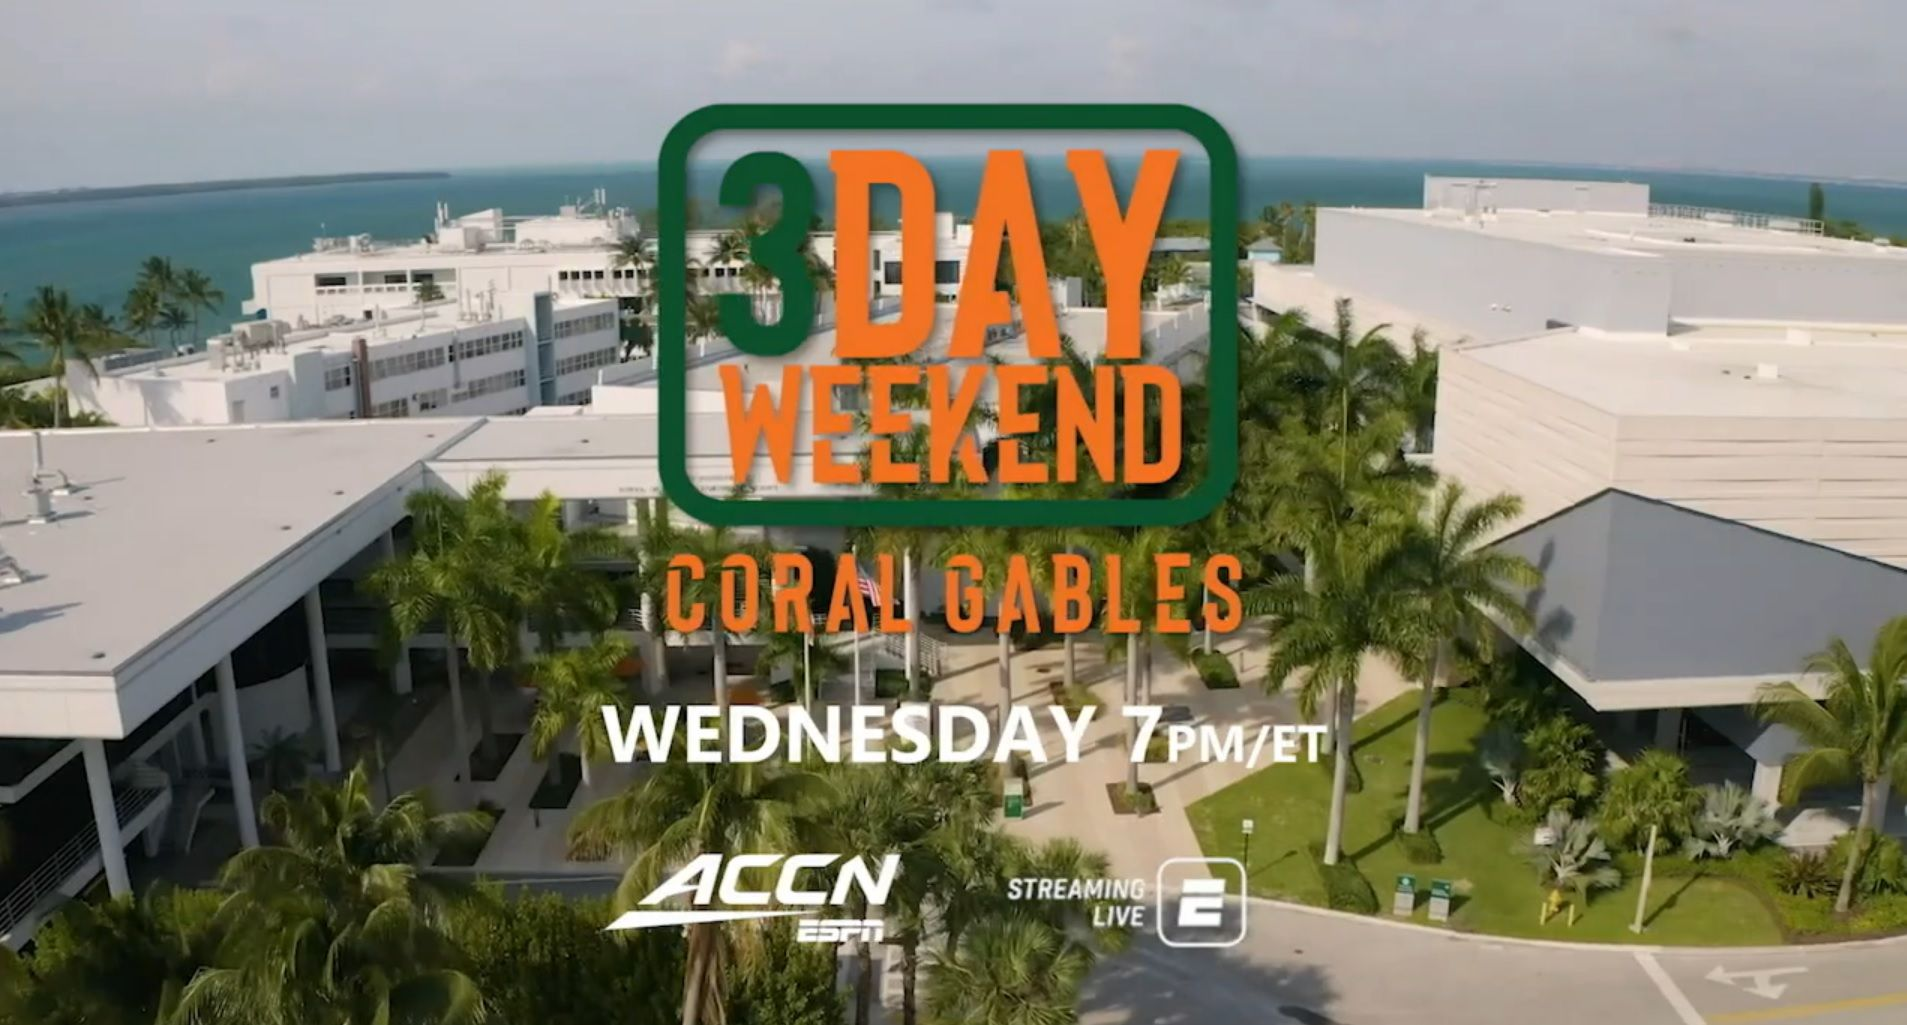 ACCN's 3-Day Weekend: Miami/Coral Gables